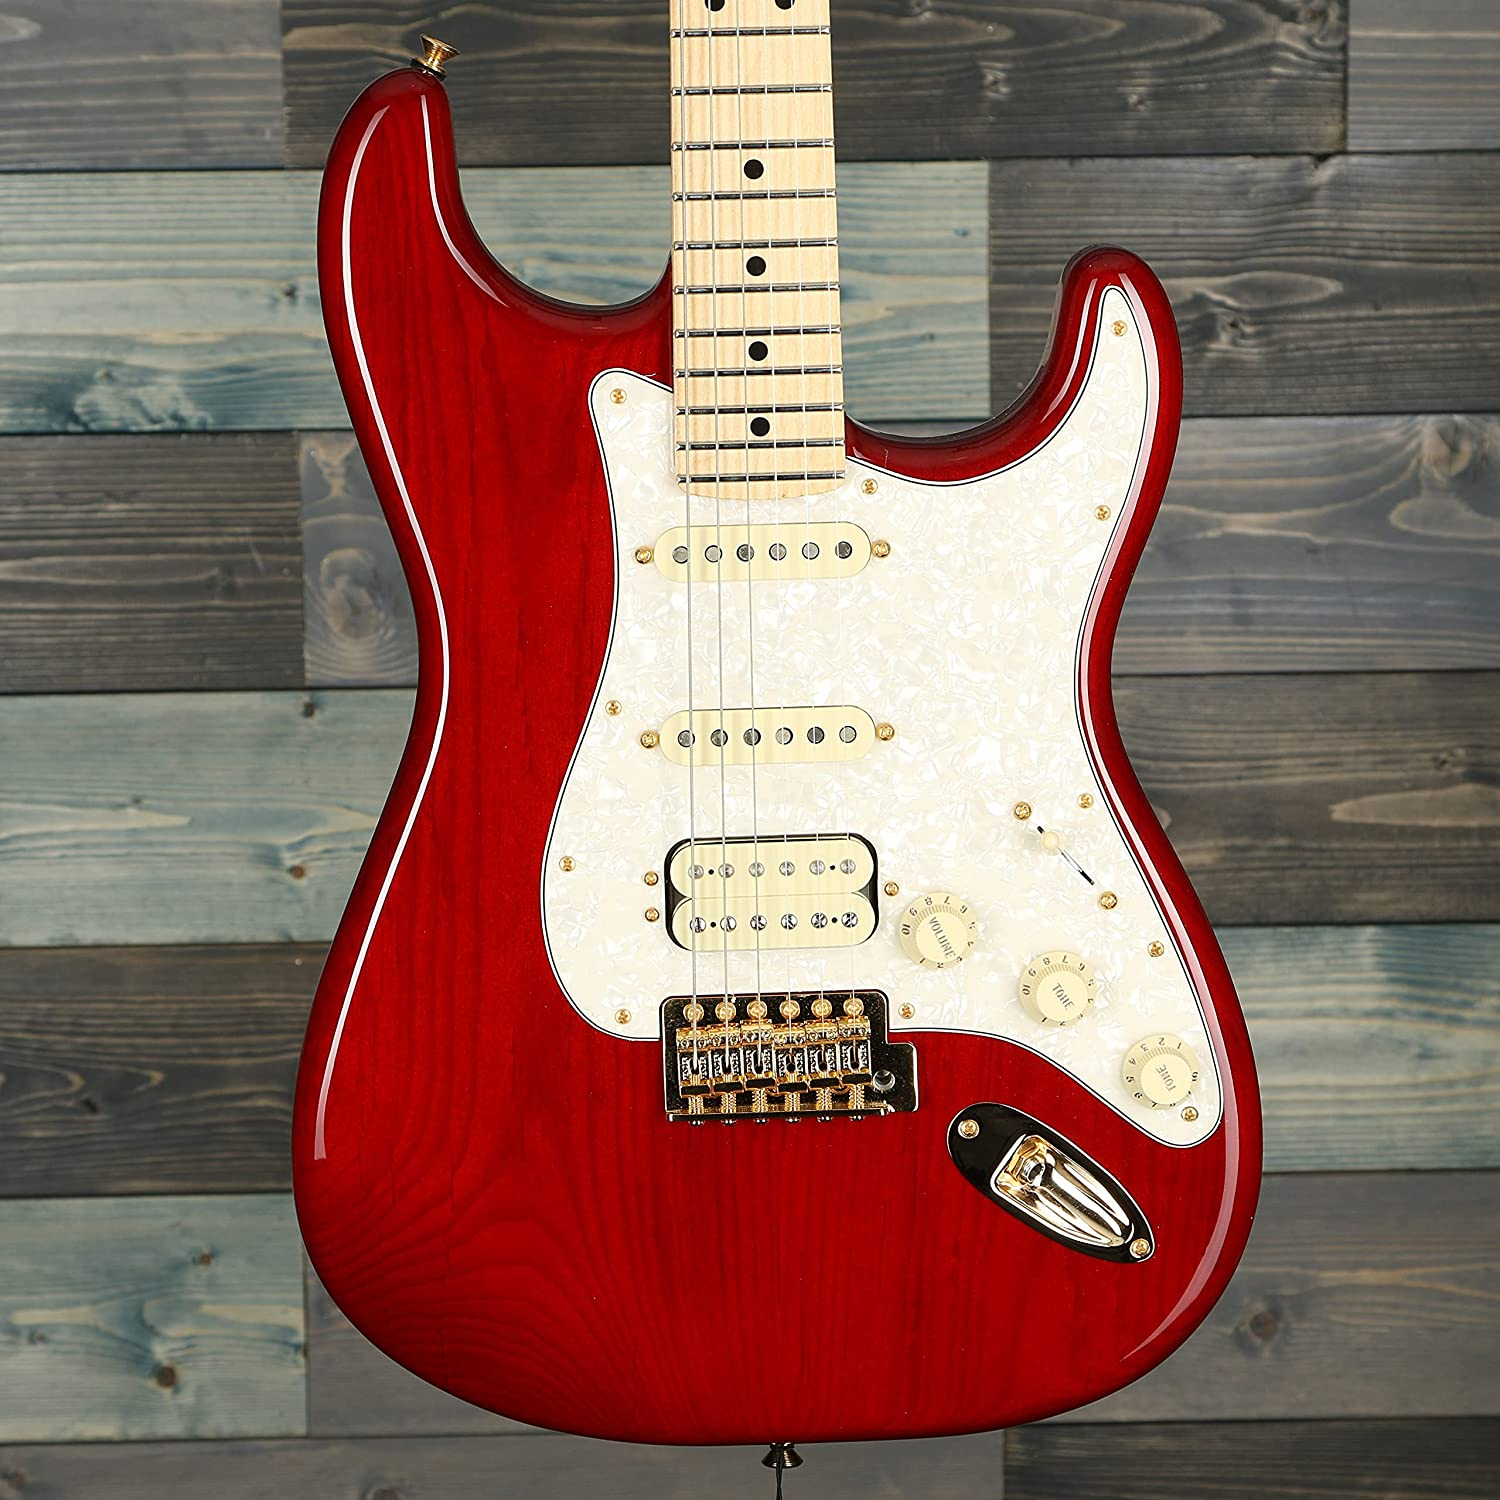 Fender Tash 2021 spring and summer new Sultana Stratocaster Electric Fingerbo Maple Guitar Excellent